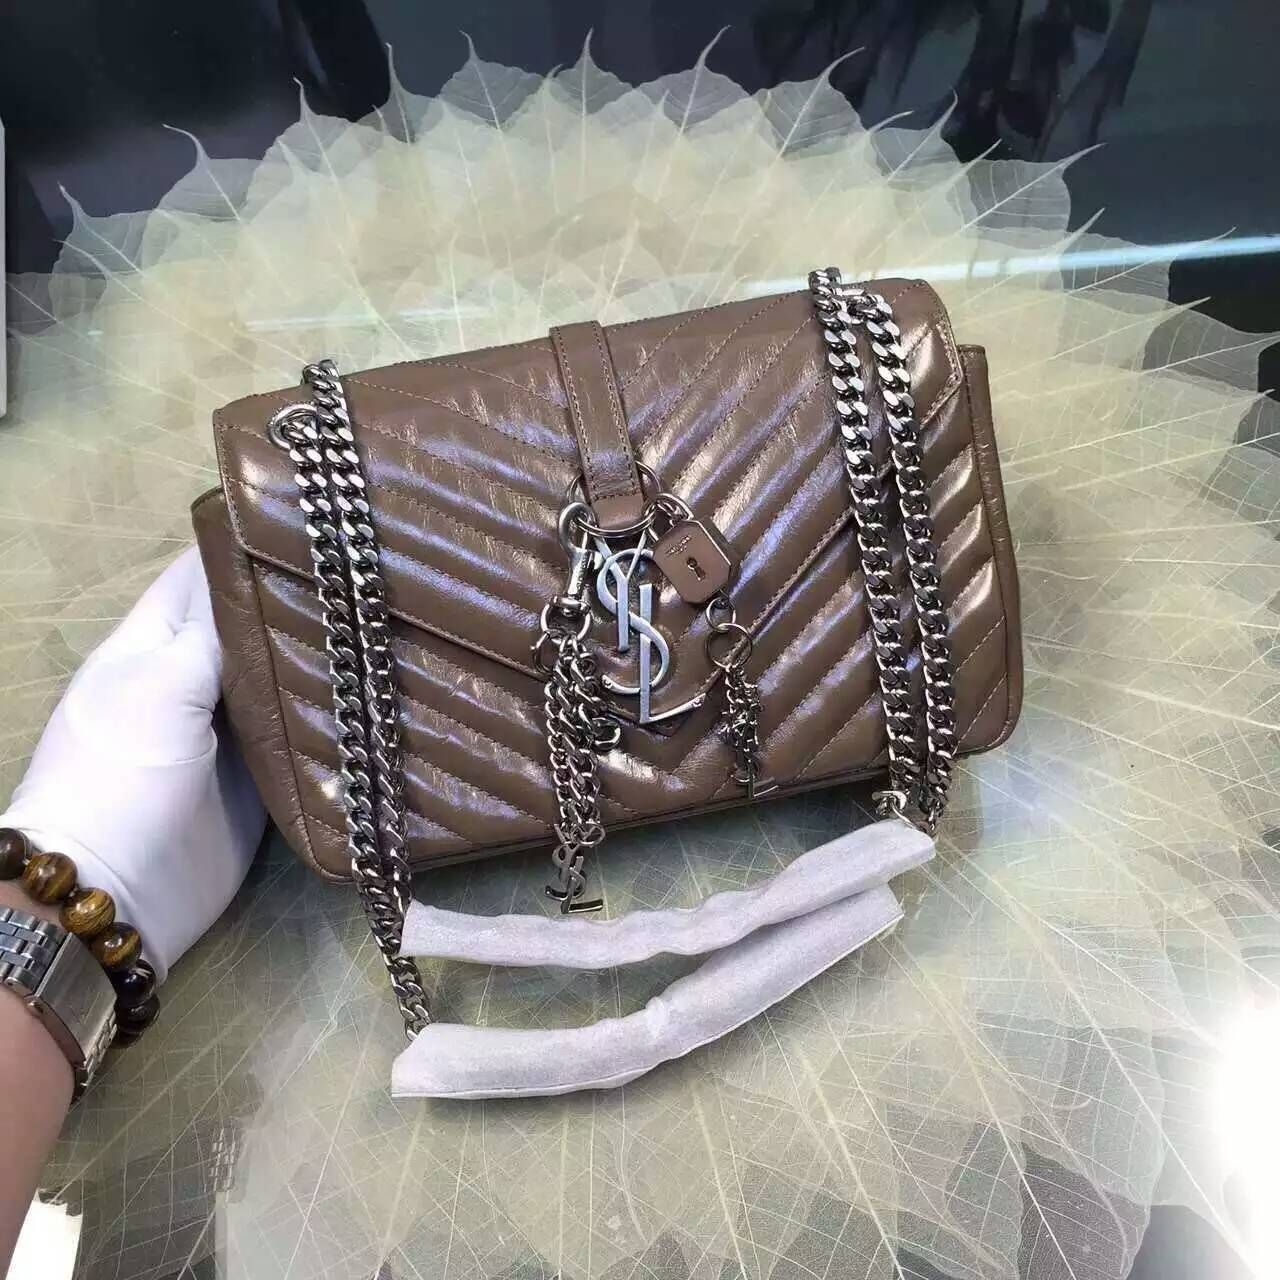 2016 Cheap YSL Out Sale with Free Shipping-Saint Laurent Classic Medium  Baby Monogram Satchel in Khaki Matelasse Leather Silver ba121f06bc740